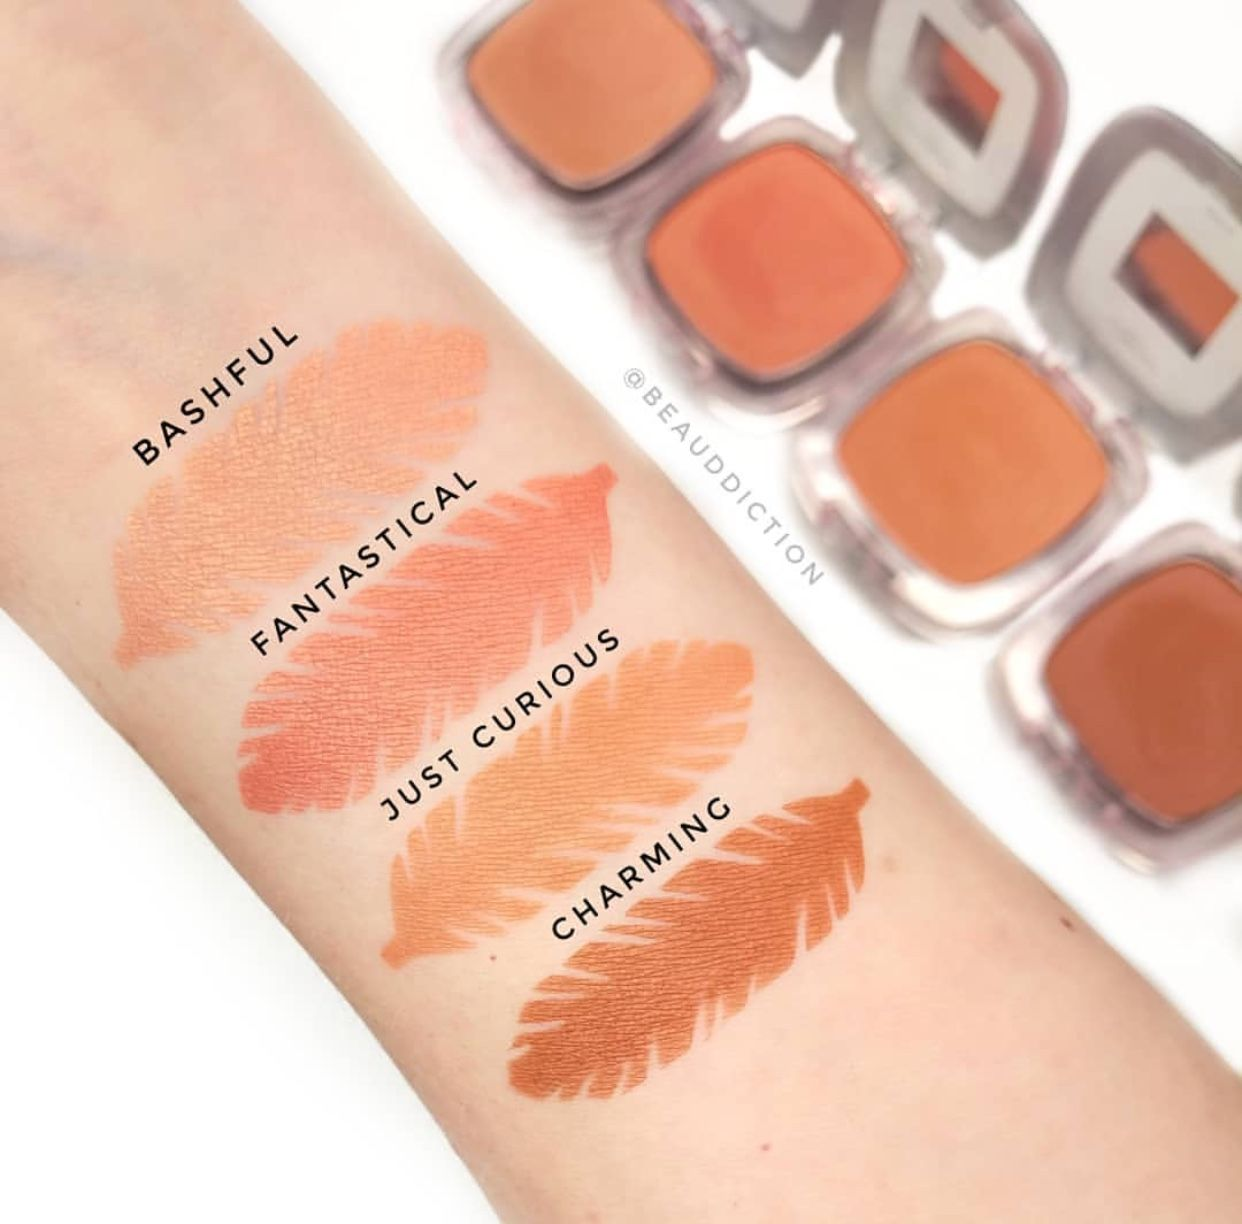 1712bd1ad88 L'Oréal Paradise Enchanted Blushes | Makeup & Skincare Products in ...